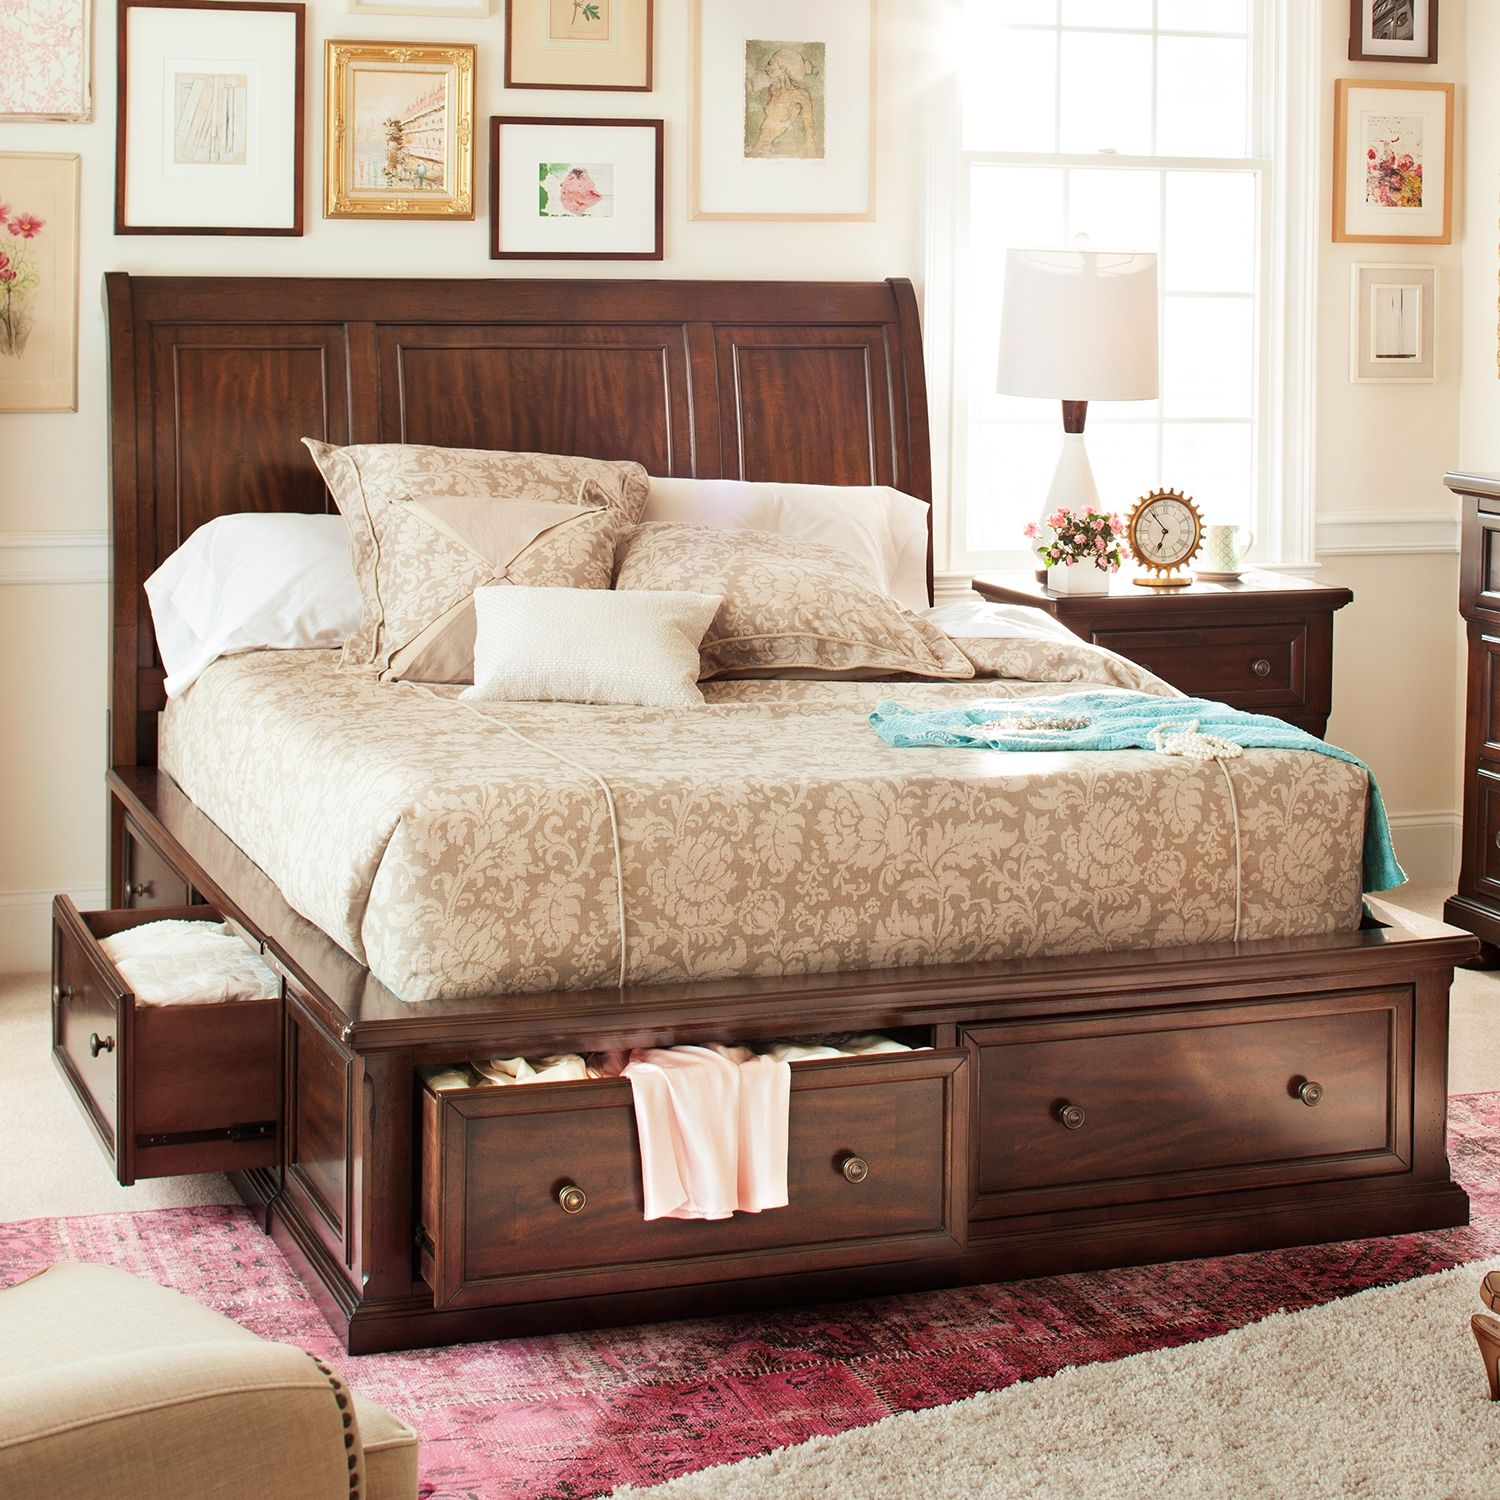 Double Duty Bed For People With Too Much Stuff Hanover Queen Storage Bed American Signature